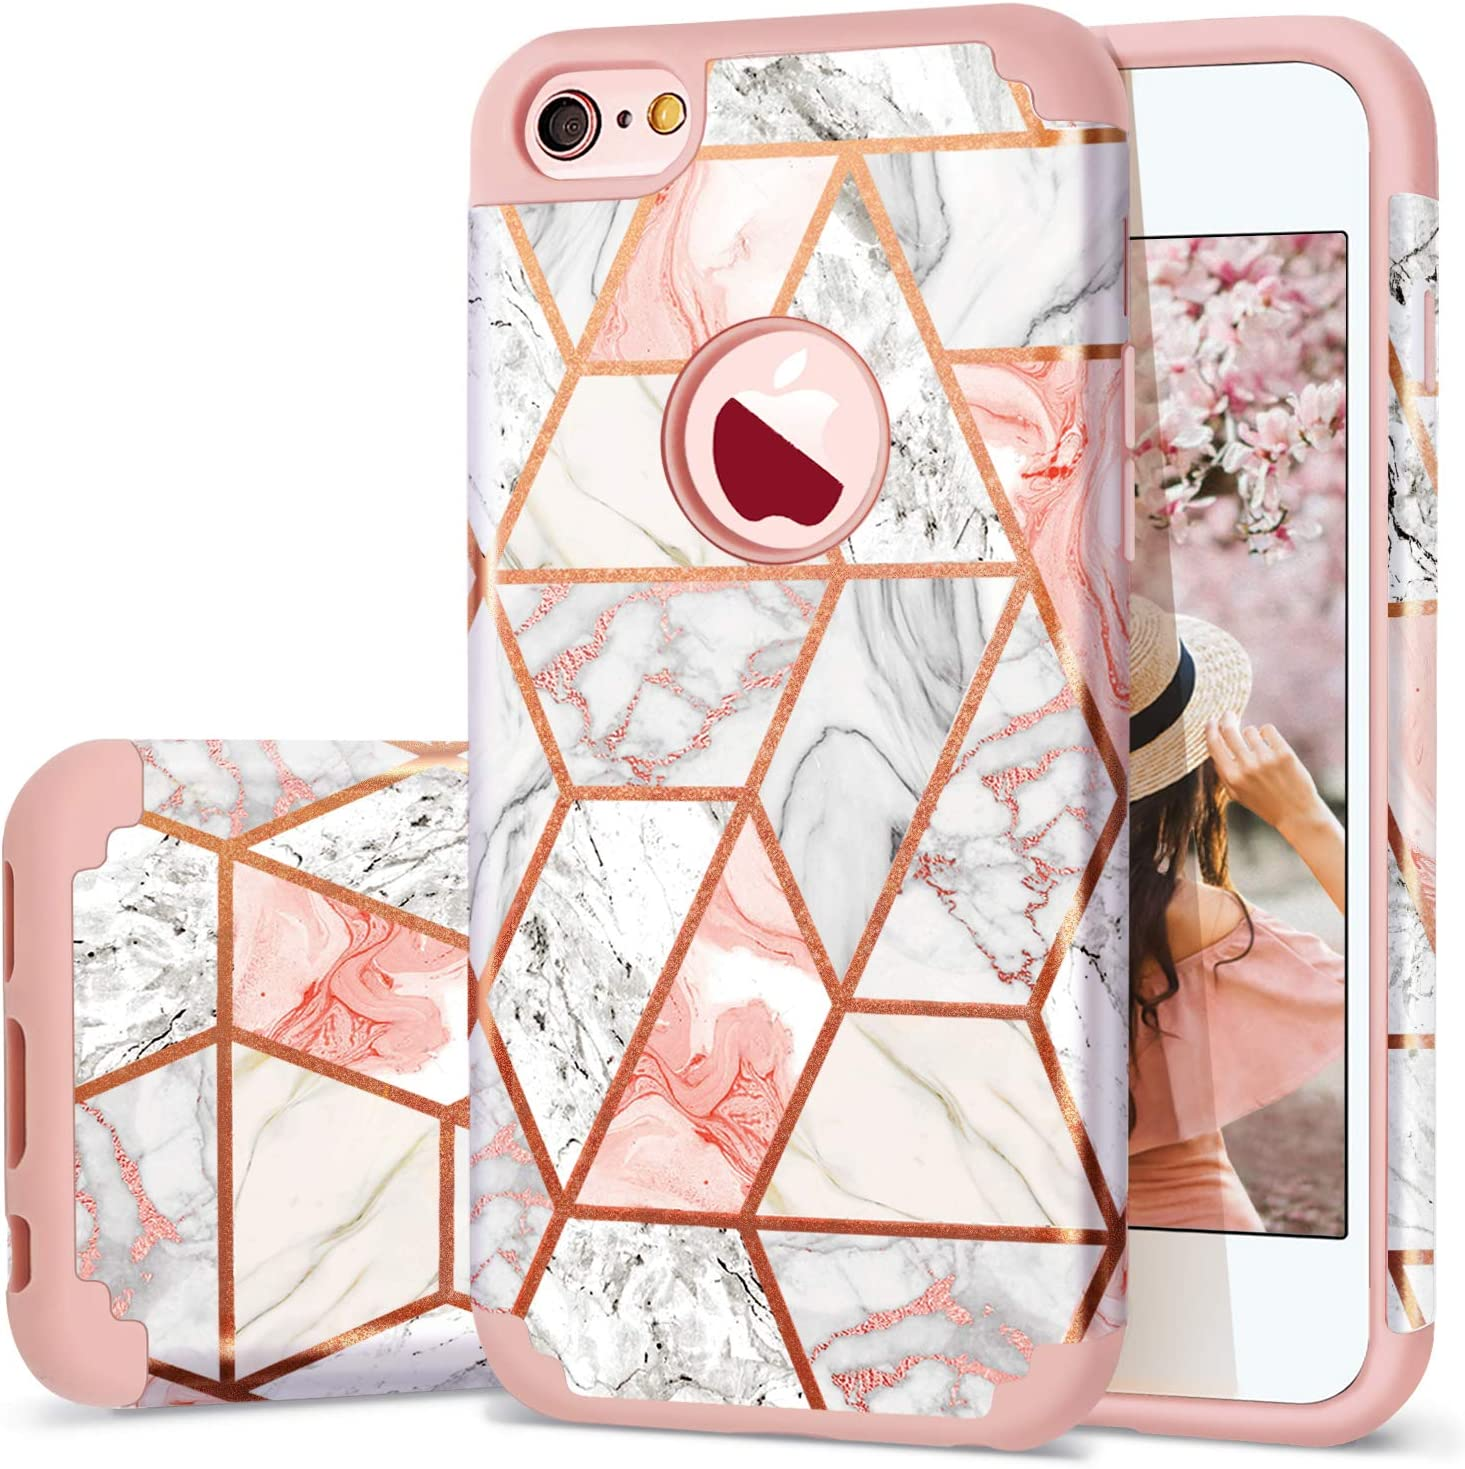 """iPhone 6s Case, iPhone 6 Case,Fingic Rose Gold Marble Design for Girls Shiny Glitter Bumper Hybrid Hard PC Soft Silicone Rubber Anti-Scratch Shockproof Protective Case Cover for Apple iPhone 6/6S 4.7"""""""